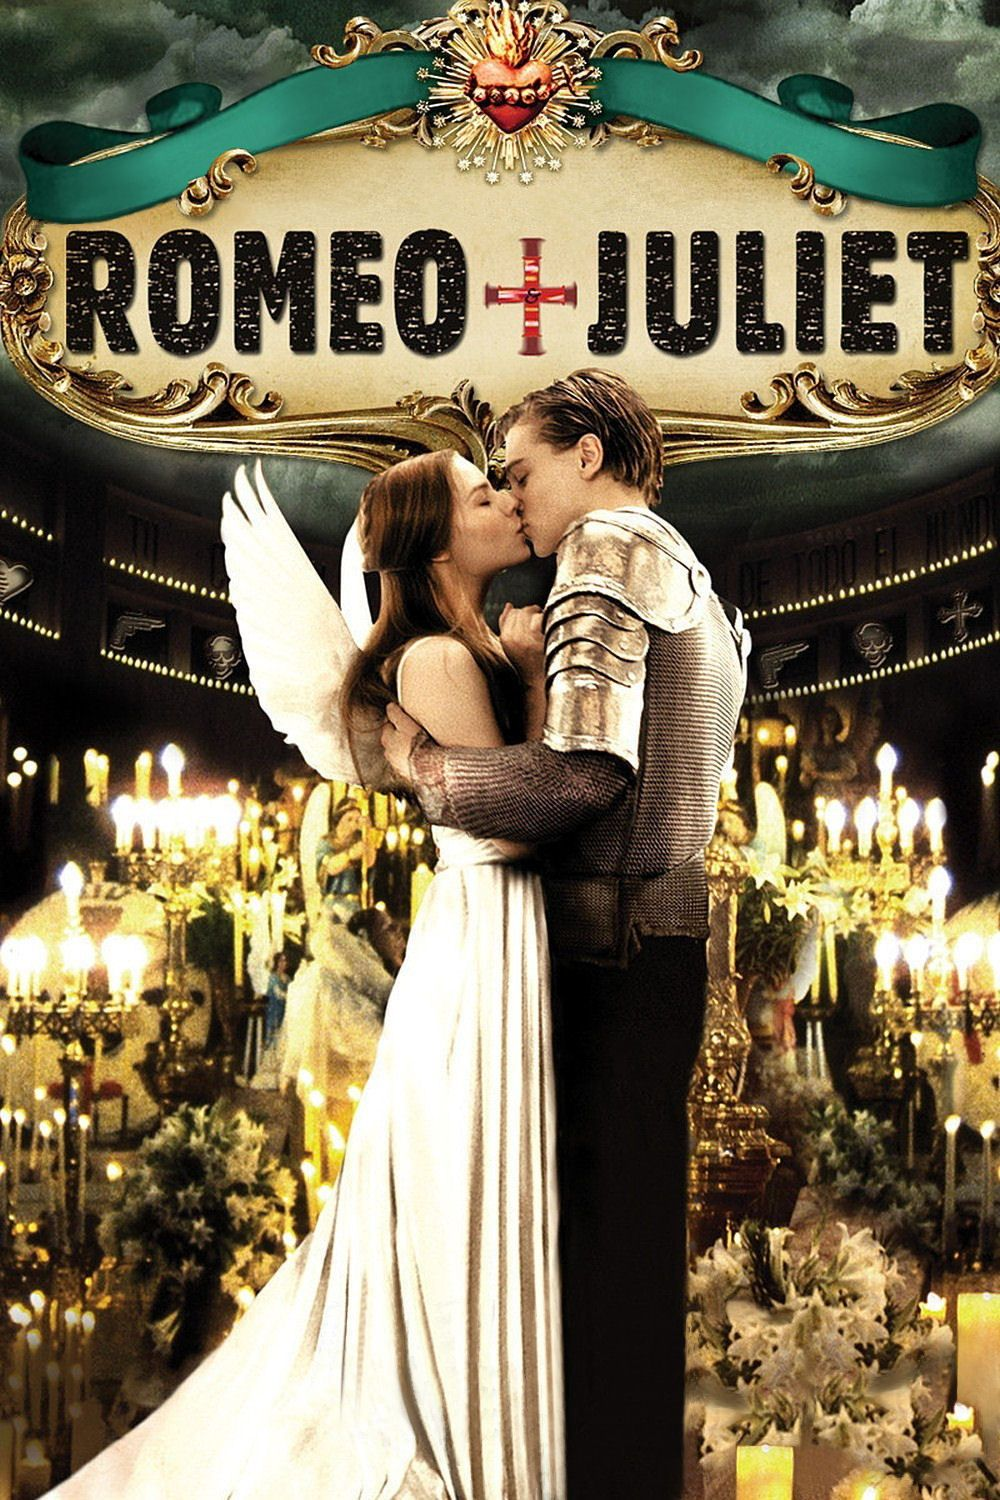 click image to watch Romeo + Juliet (1996) | wOw | Pinterest ...